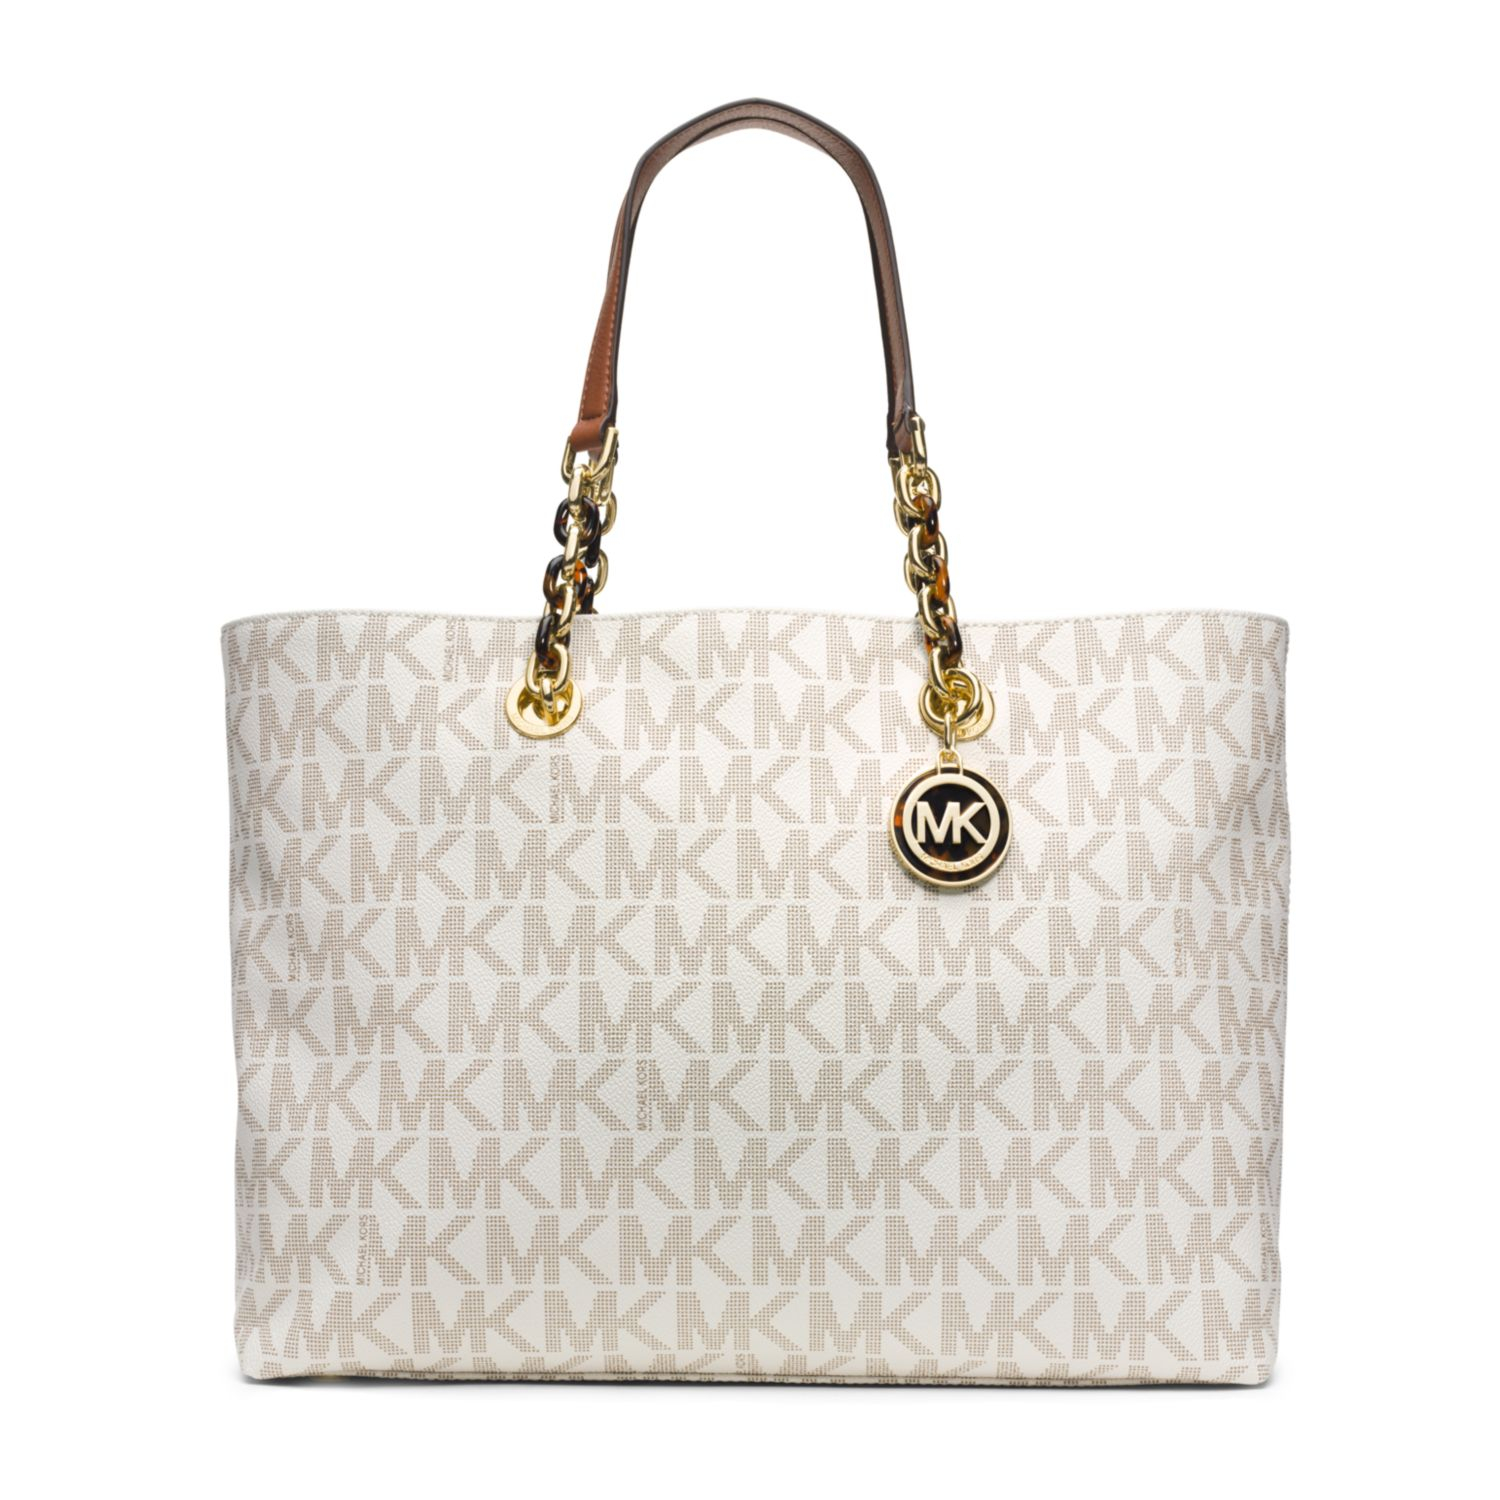 lyst michael kors cynthia logo large tote in white rh lyst com